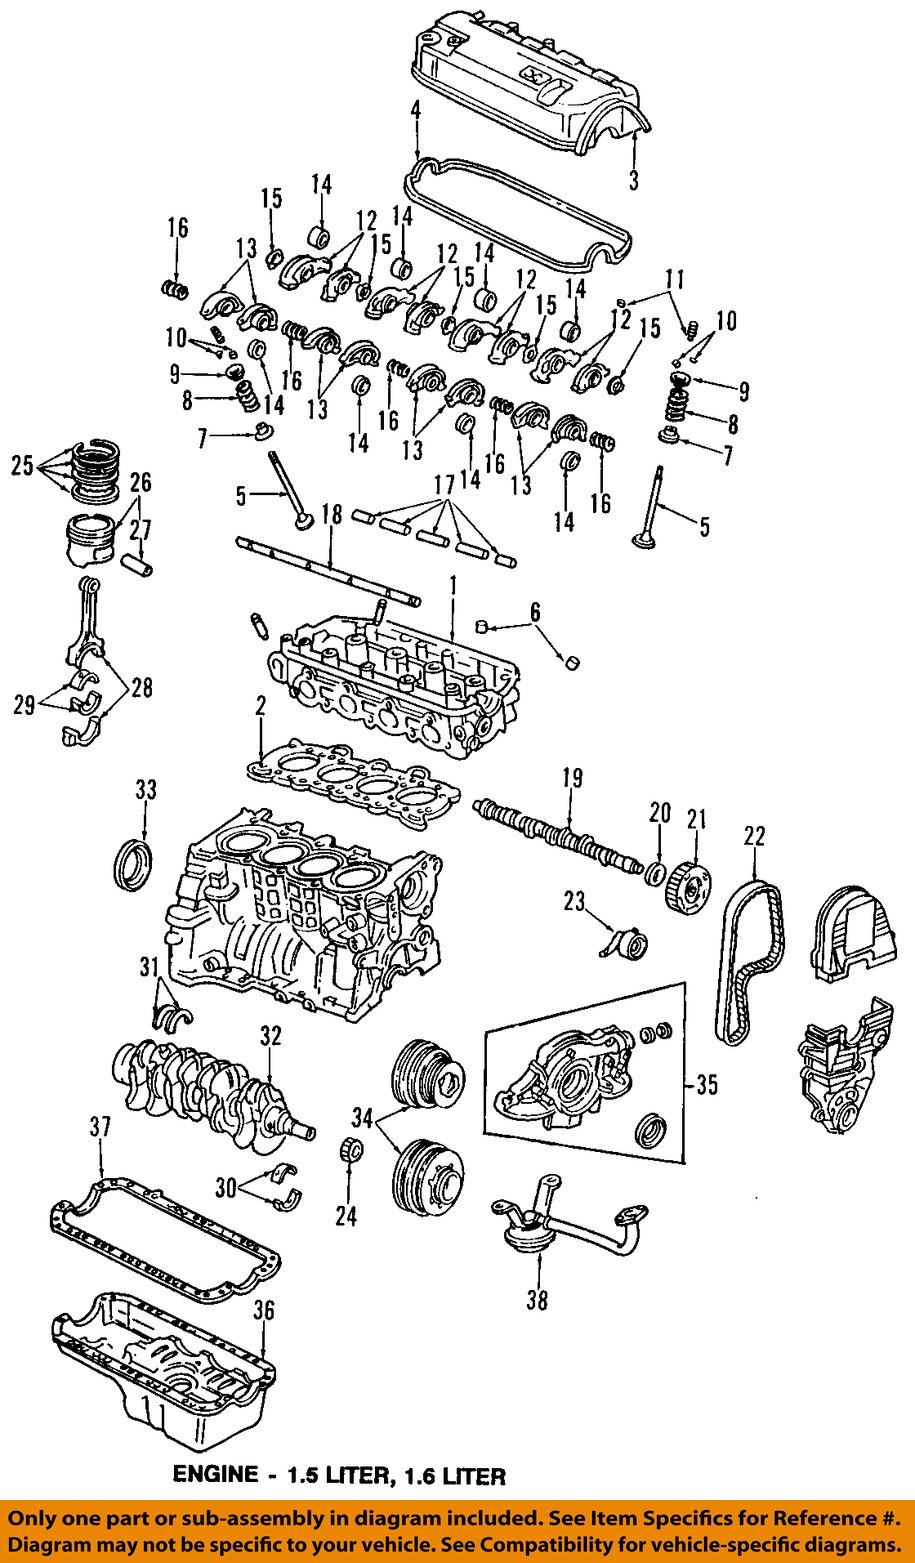 95 honda civic ignition wiring diagram 95 honda civic parts diagram honda oem 92-95 civic-valve cover gasket 12341p08000 | ebay